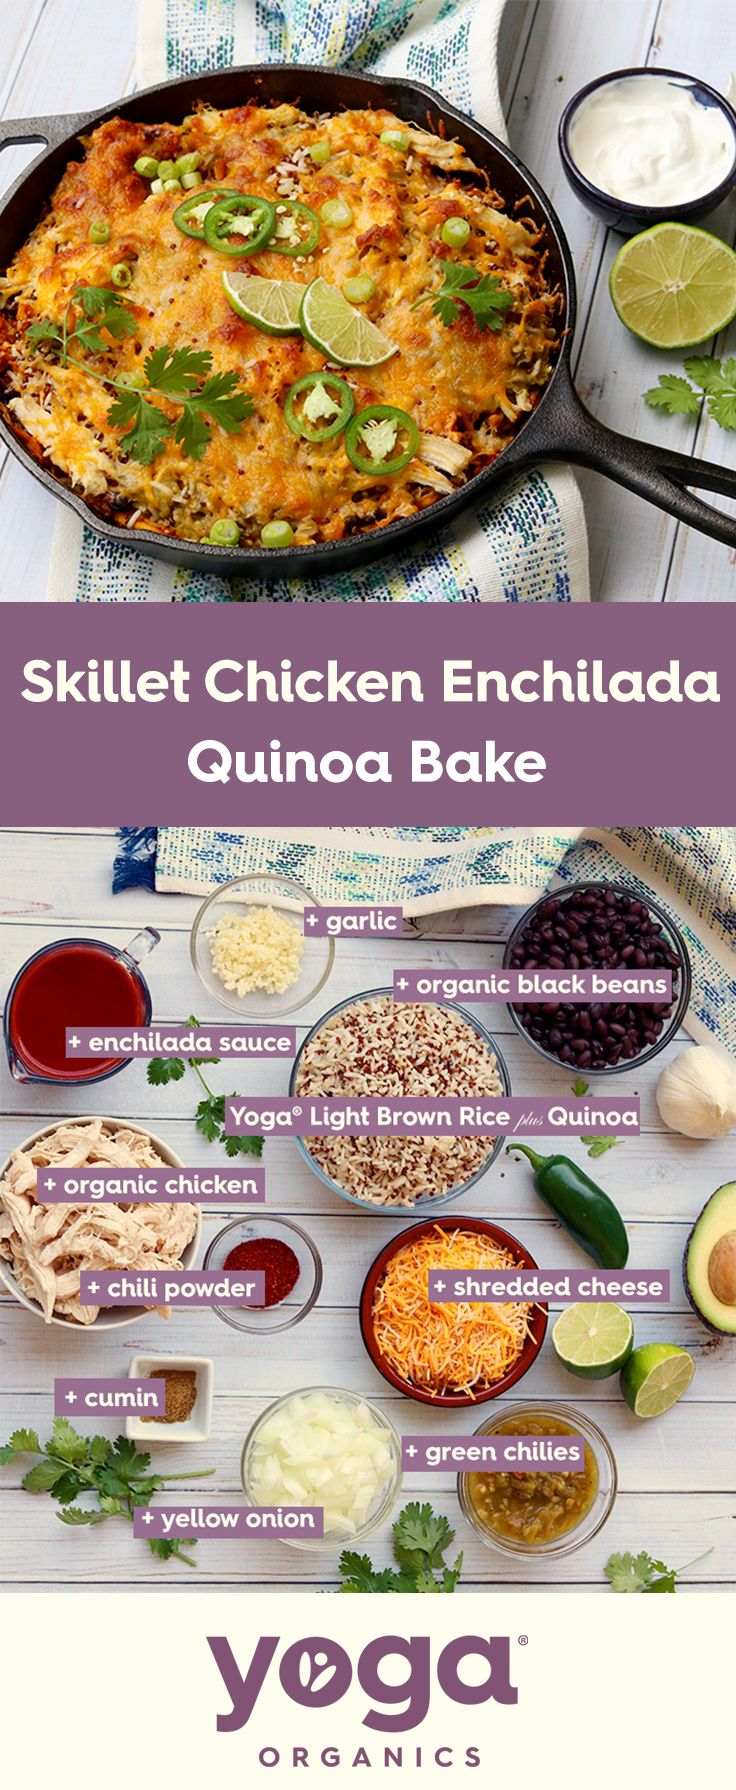 Skillet Chicken Enchilada Quinoa Bake | 1. Cook Yoga rice as directed 2. Cook & shred chicken. Drain and rinse black beans. Preheat oven to 375 degrees.  3. In a large cast iron skillet, add olive oil, heat, add onions and garlic. Cook about 2-3 min. Add black beans, green chilies, cooked rice, shredded chicken, enchilada sauce, Add chili powder and cumin seasoning. Stir. Cook over medium-high heat for 3 minutes. Top with shredded cheese. 5. Bake until the cheese is melted and bubbly